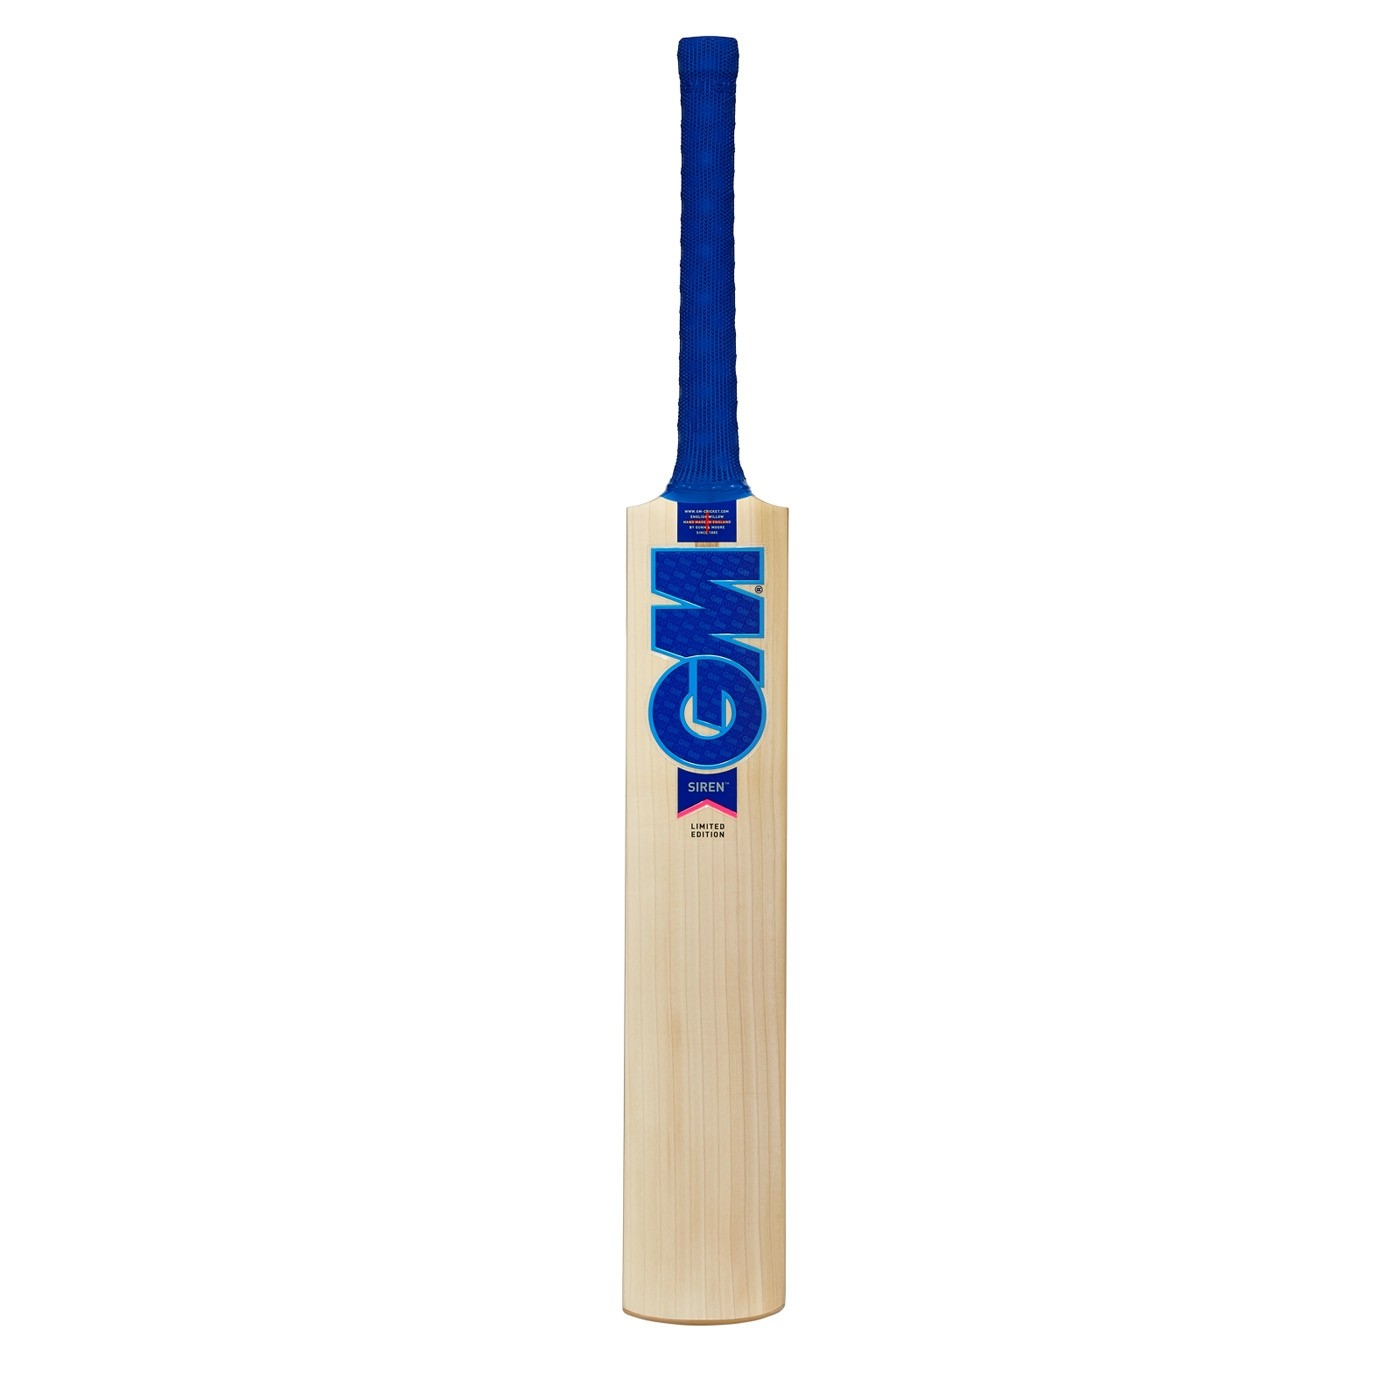 2020 Gunn and Moore Siren DXM 404 Cricket Bat